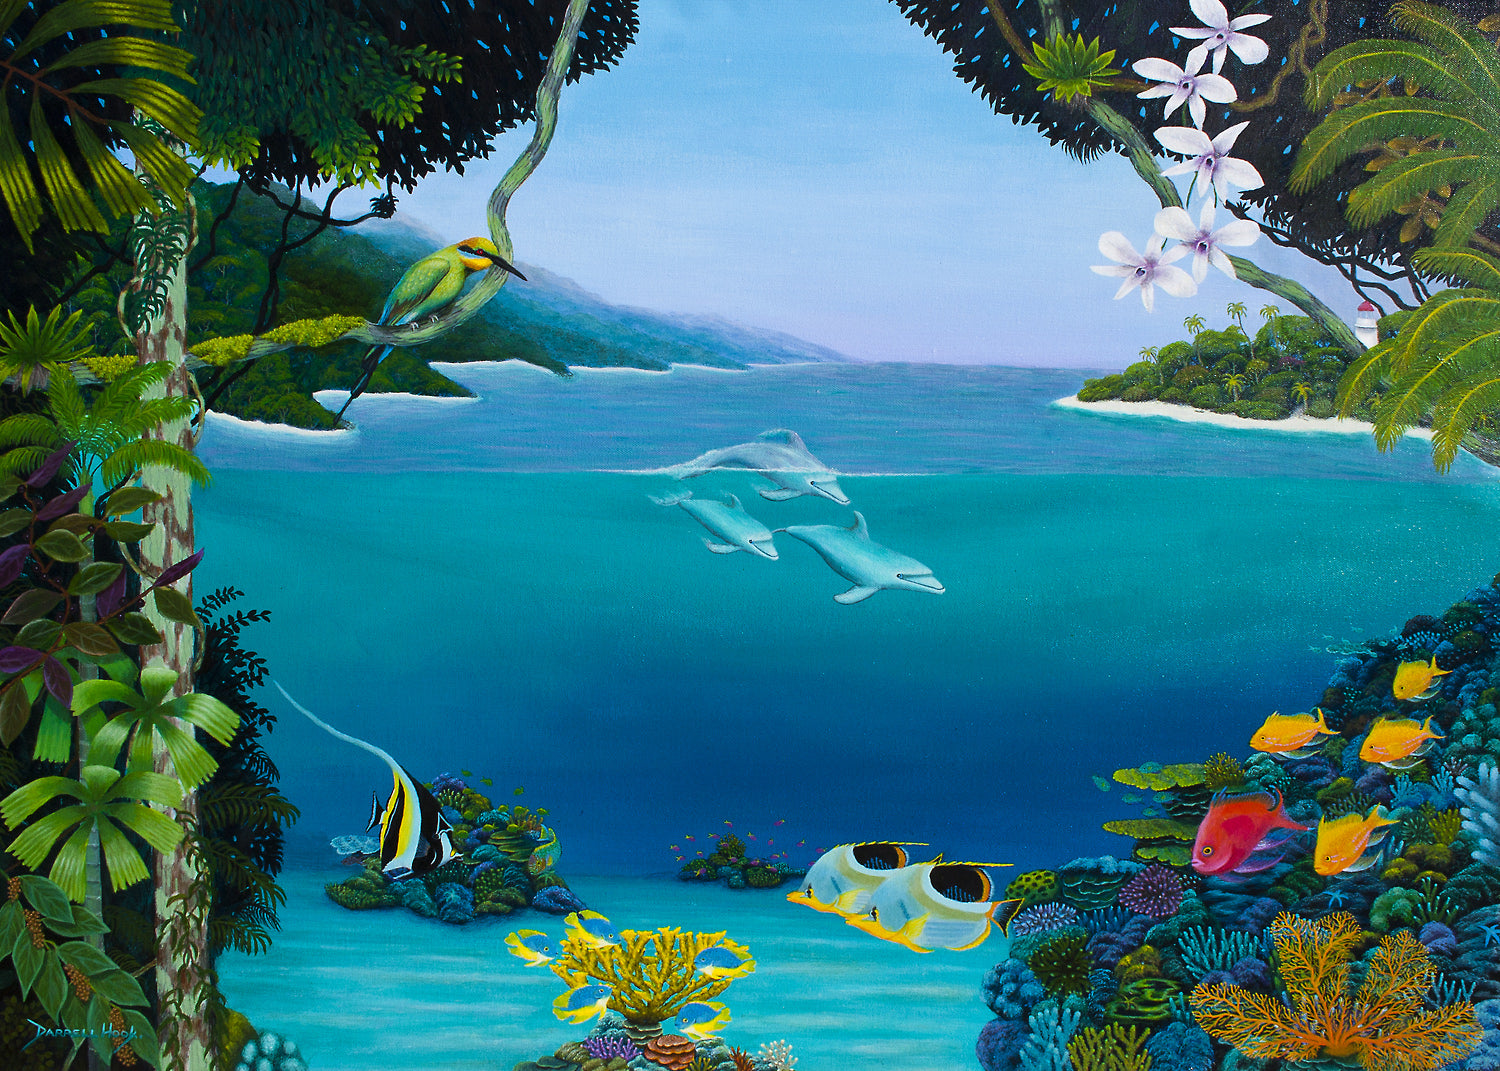 Paradise Found – Original on Canvas by Darrell Hook